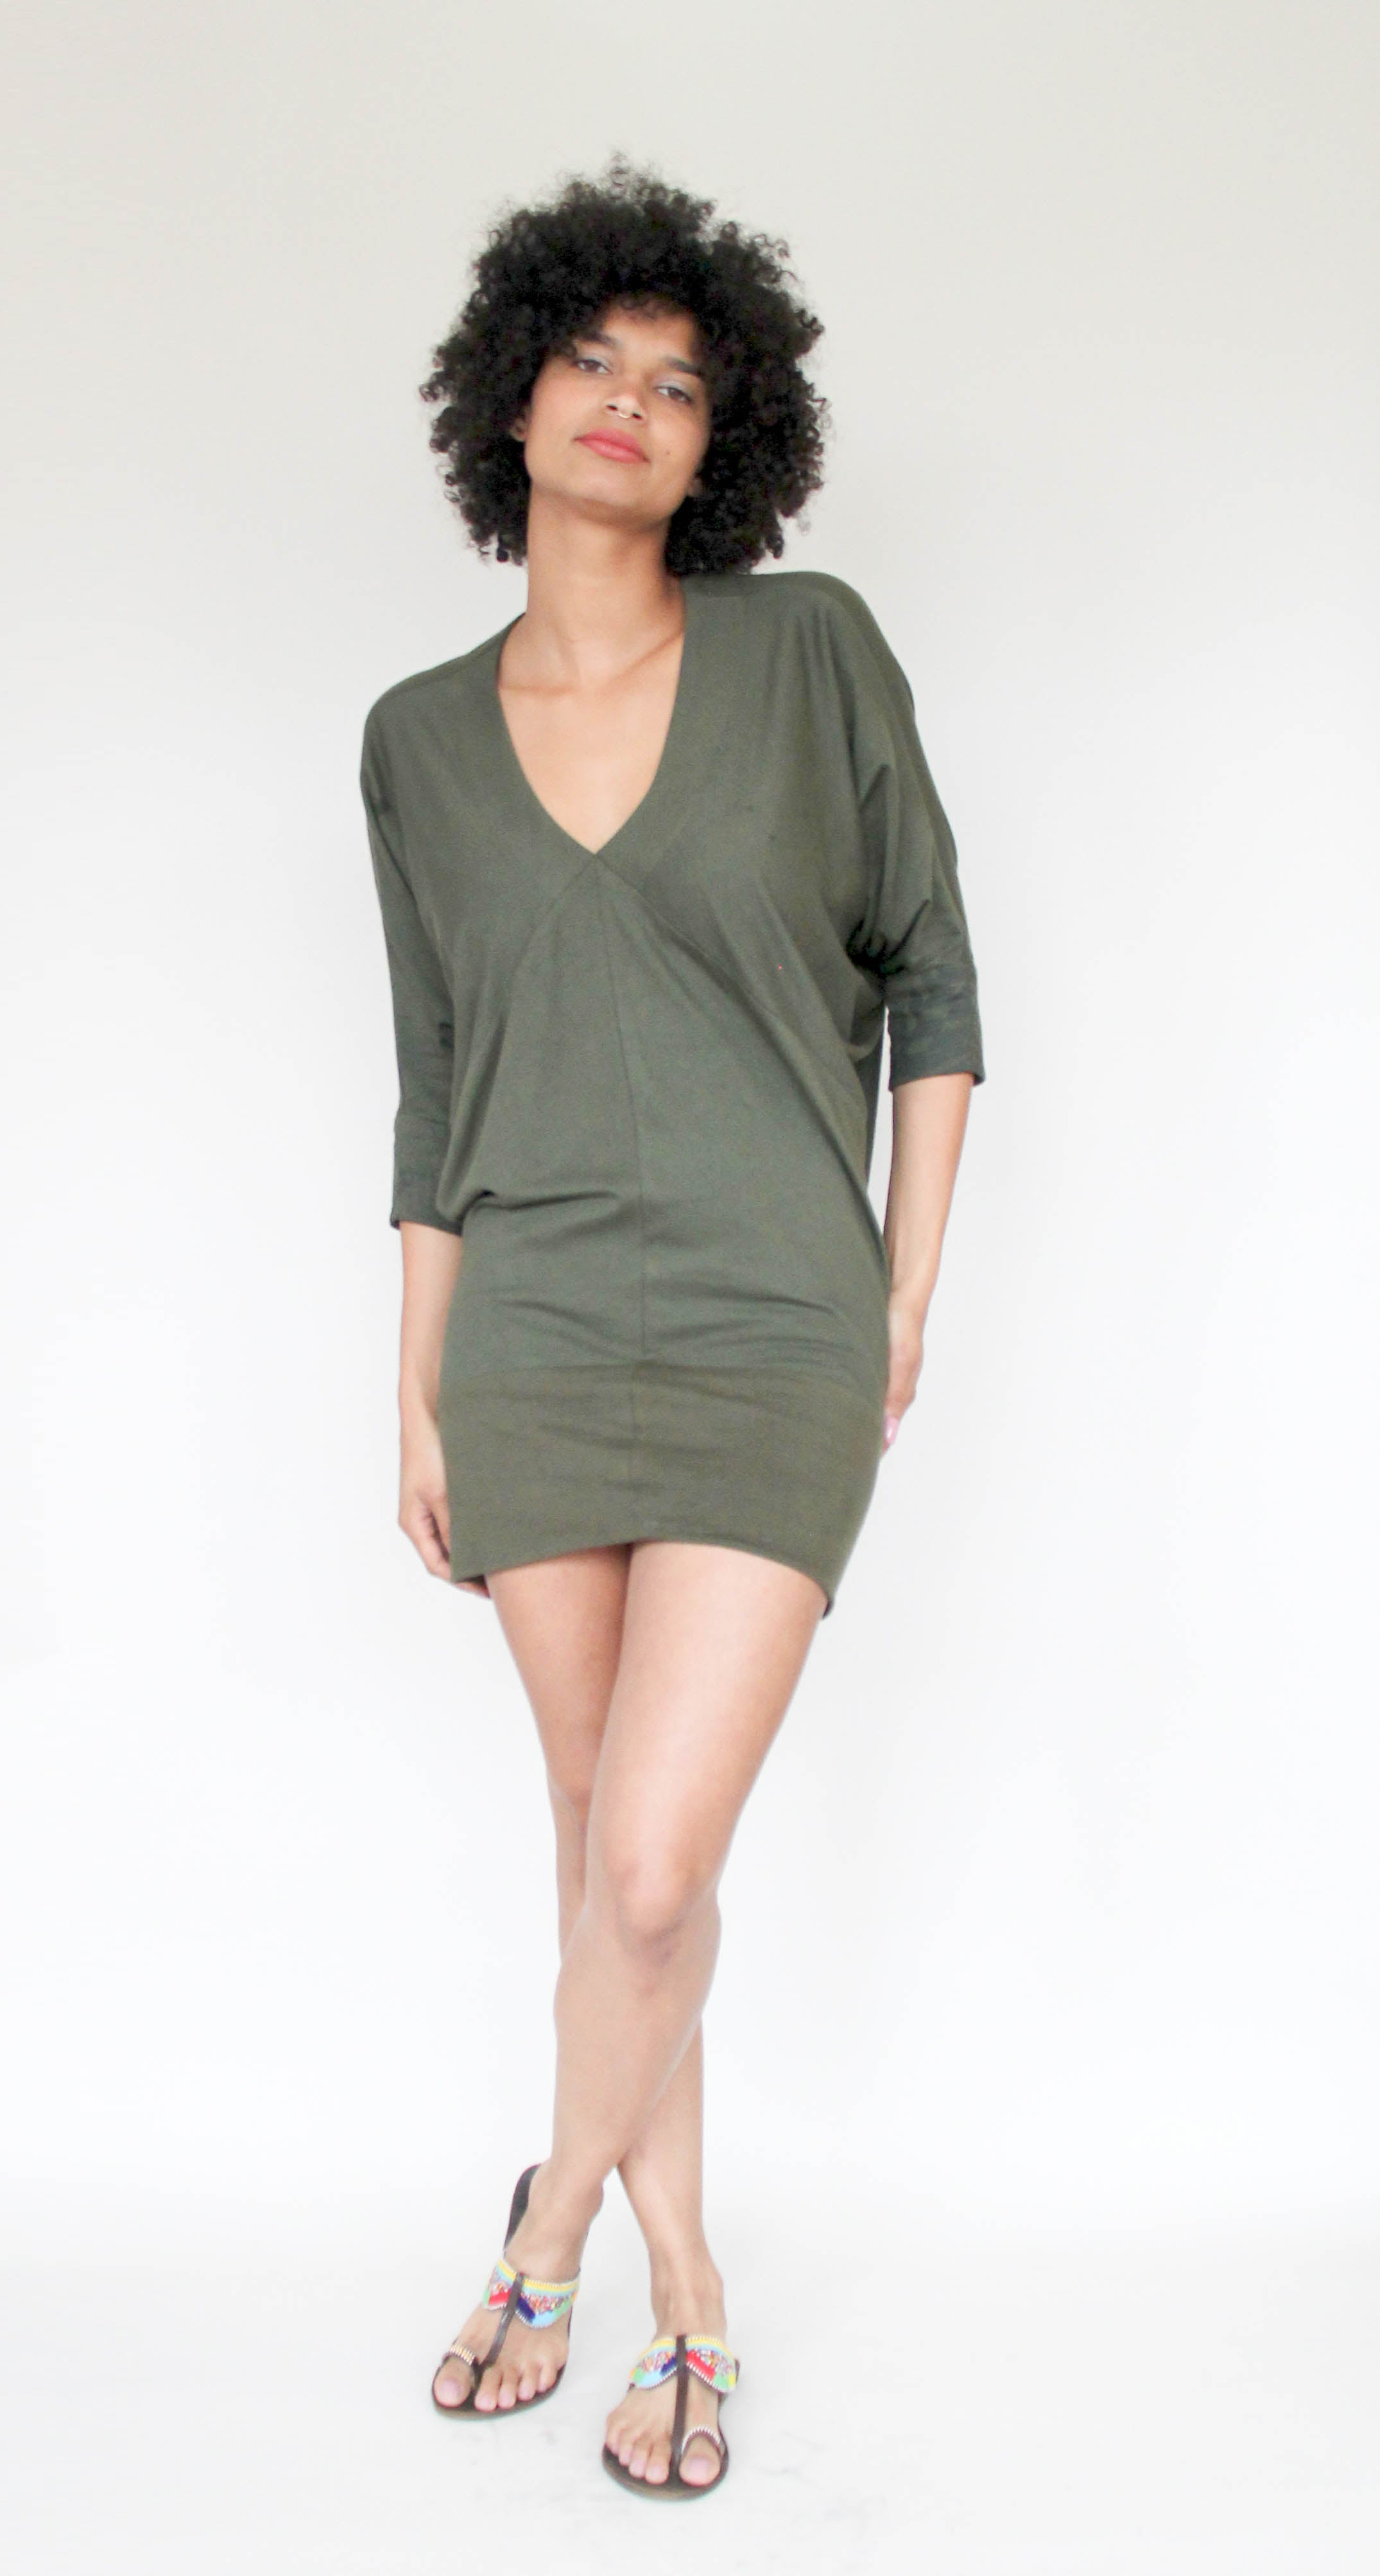 DUMA Tunic Top